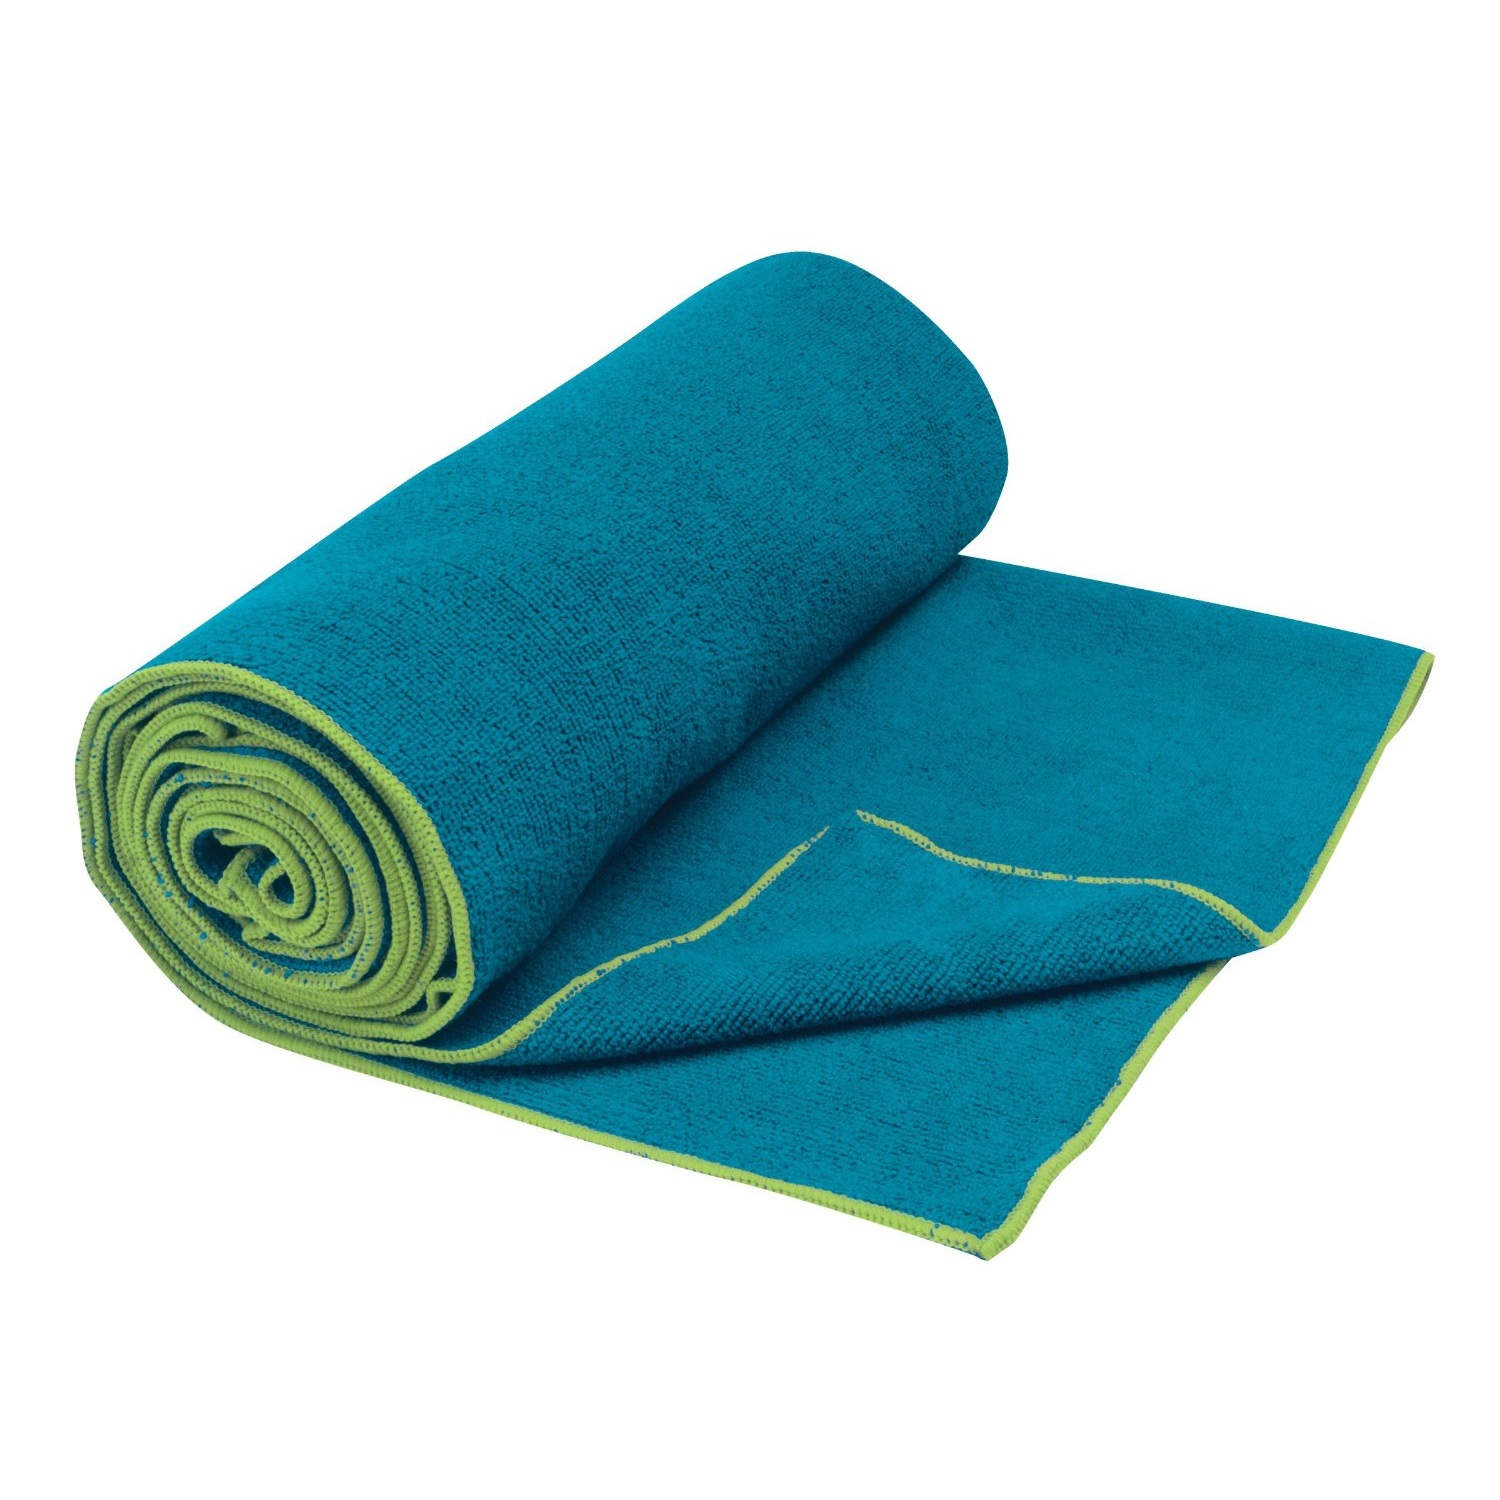 gaiam thirsty yoga towel blue teal